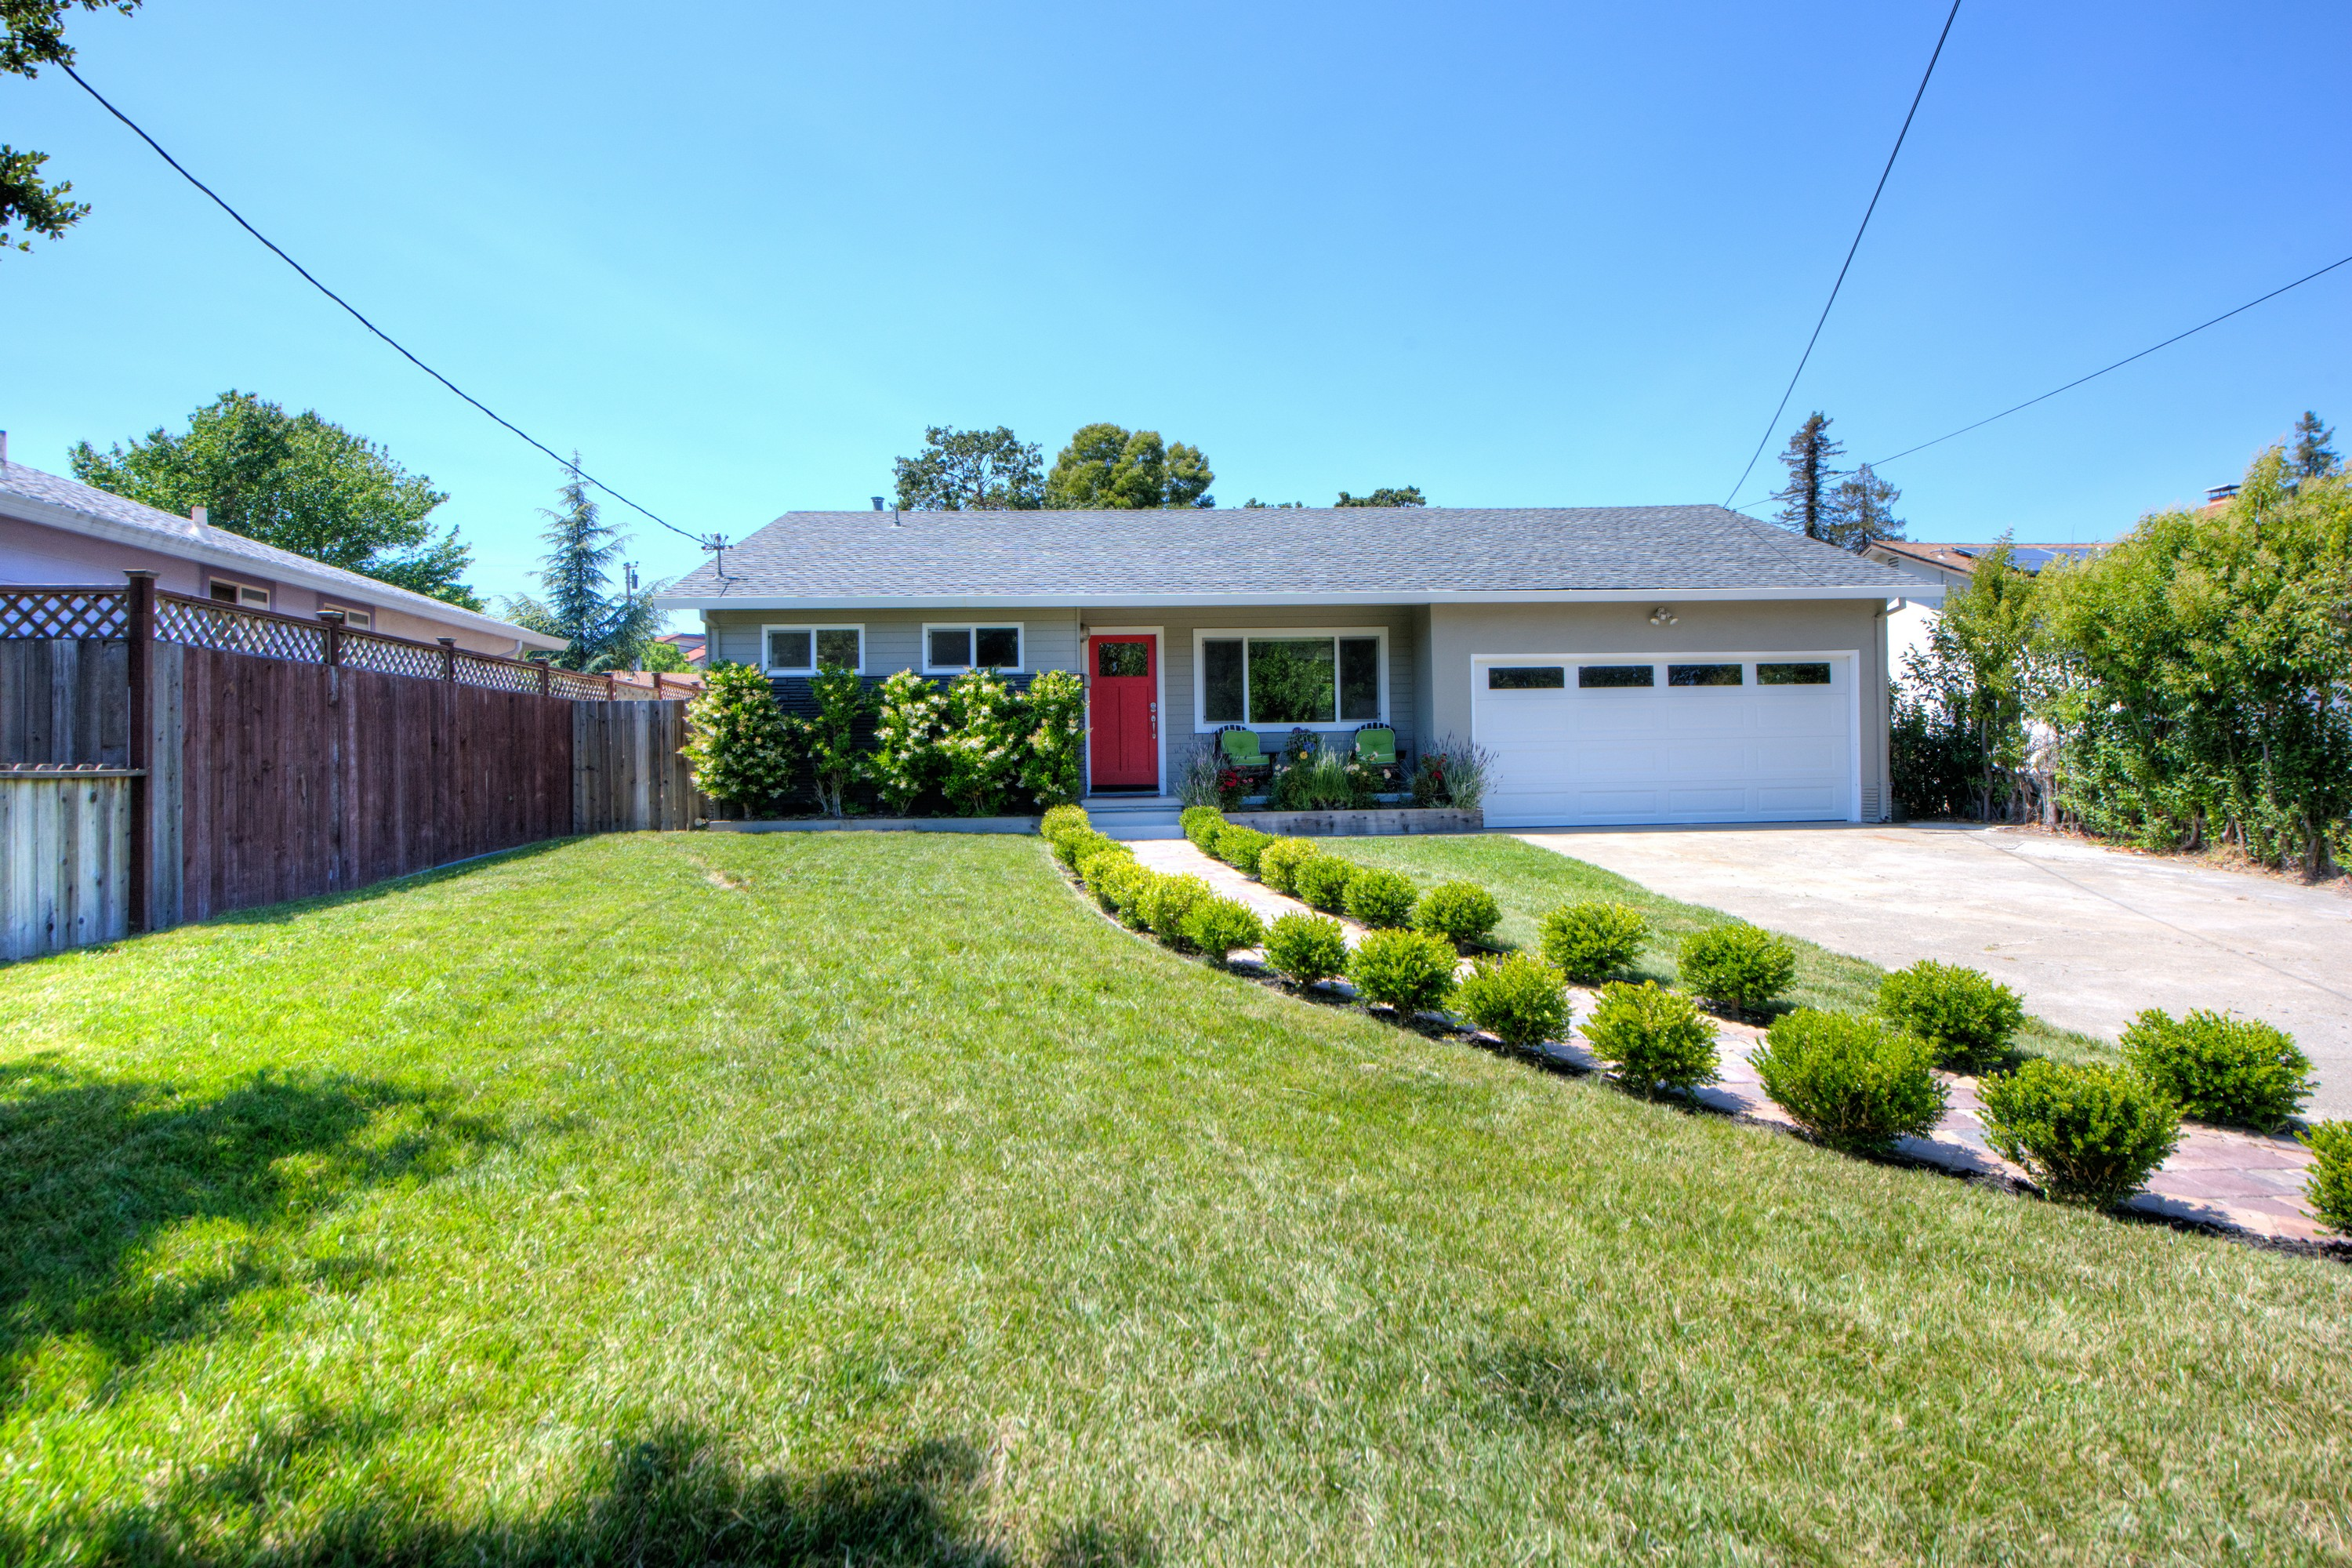 Single Family Home for Sale at San Rafael Charmer with HUGE Lot 9 Constance Drive San Rafael, California, 94903 United States